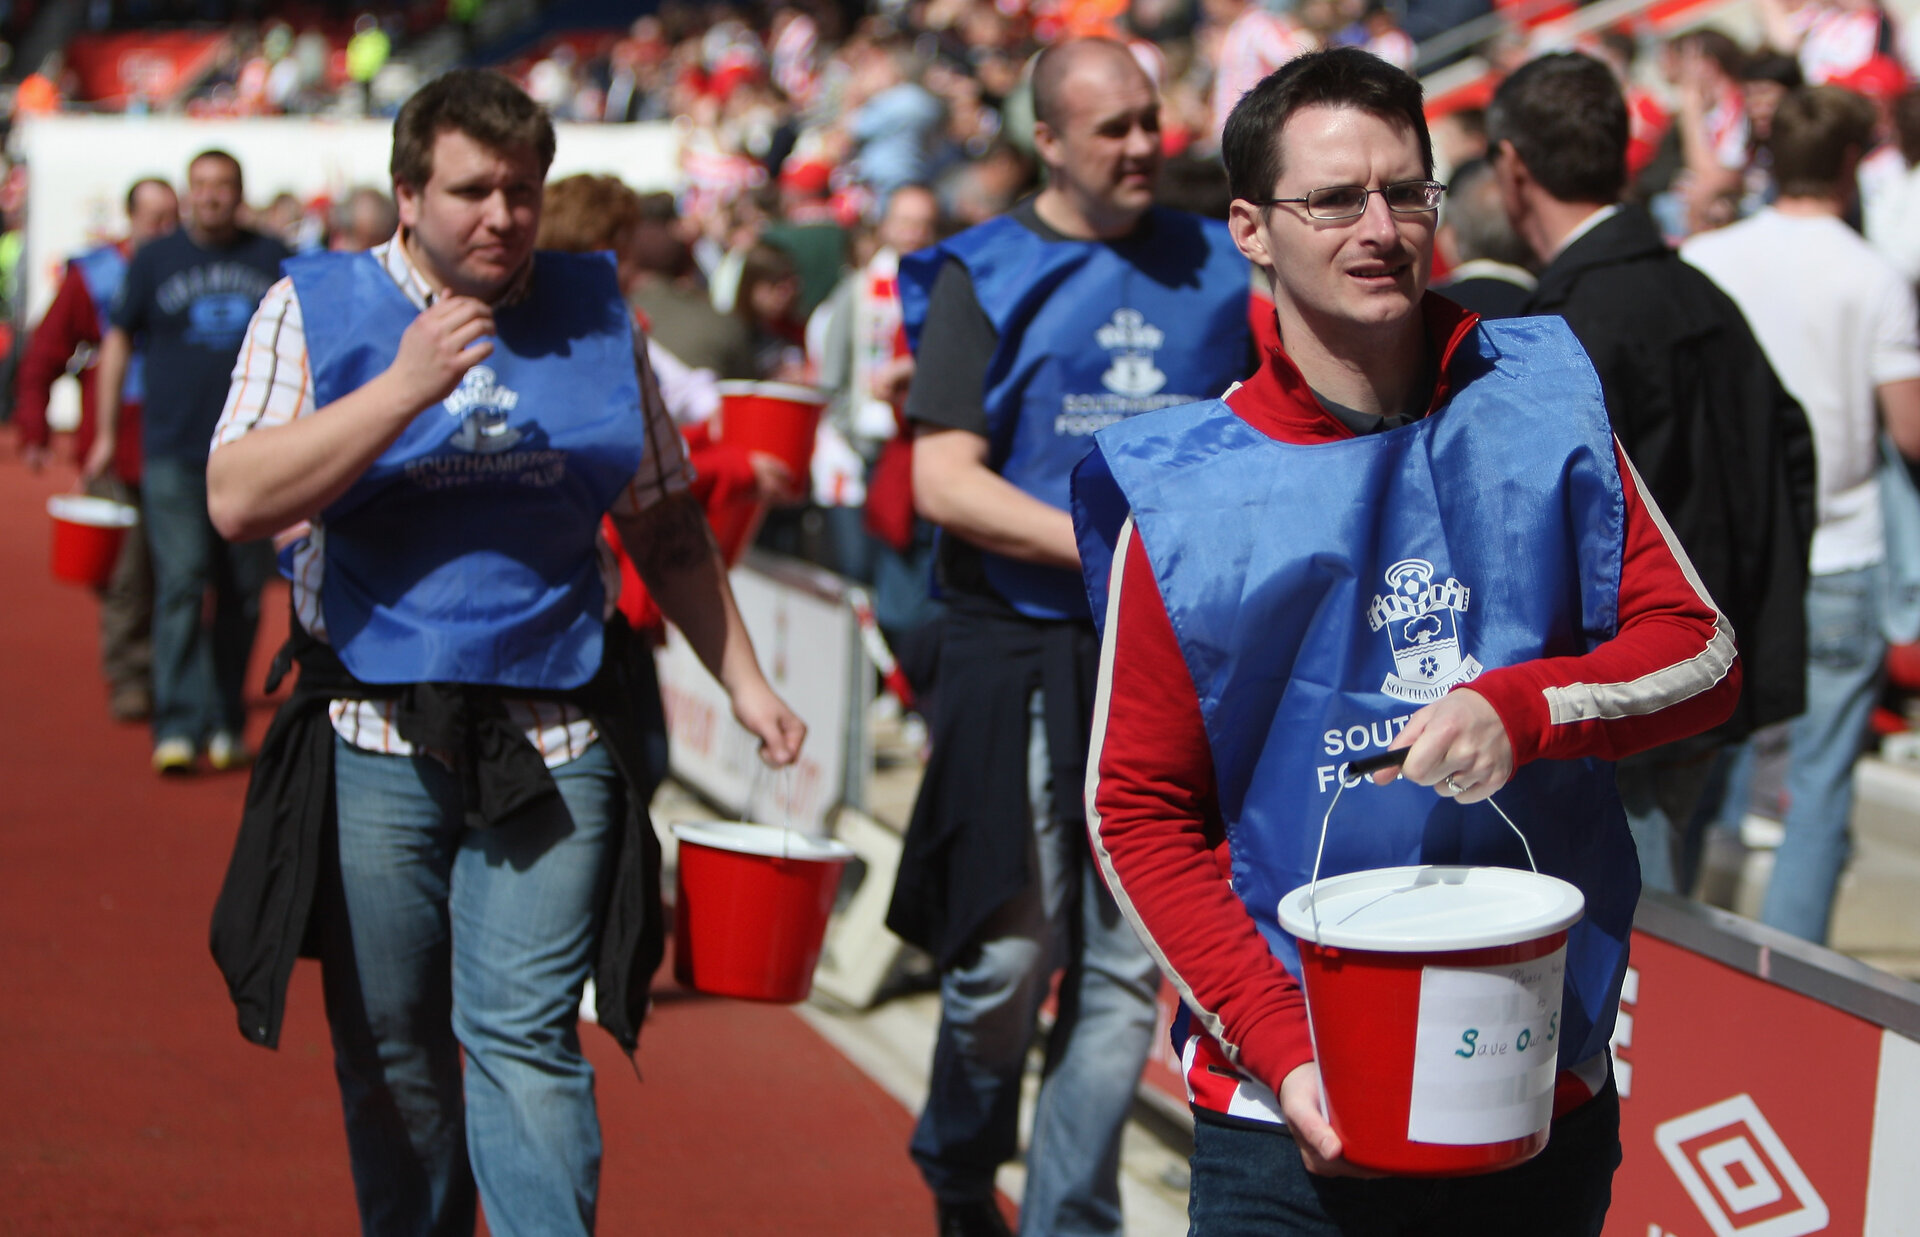 SOUTHAMPTON, ENGLAND - APRIL 25:  Southampton appeal for donations to the club during the Coca Cola Championship match between Southampton and Burnley at St Mary's Stadium on April 25, 2009 in Southampton, England.  (Photo by Bryn Lennon/Getty Images)